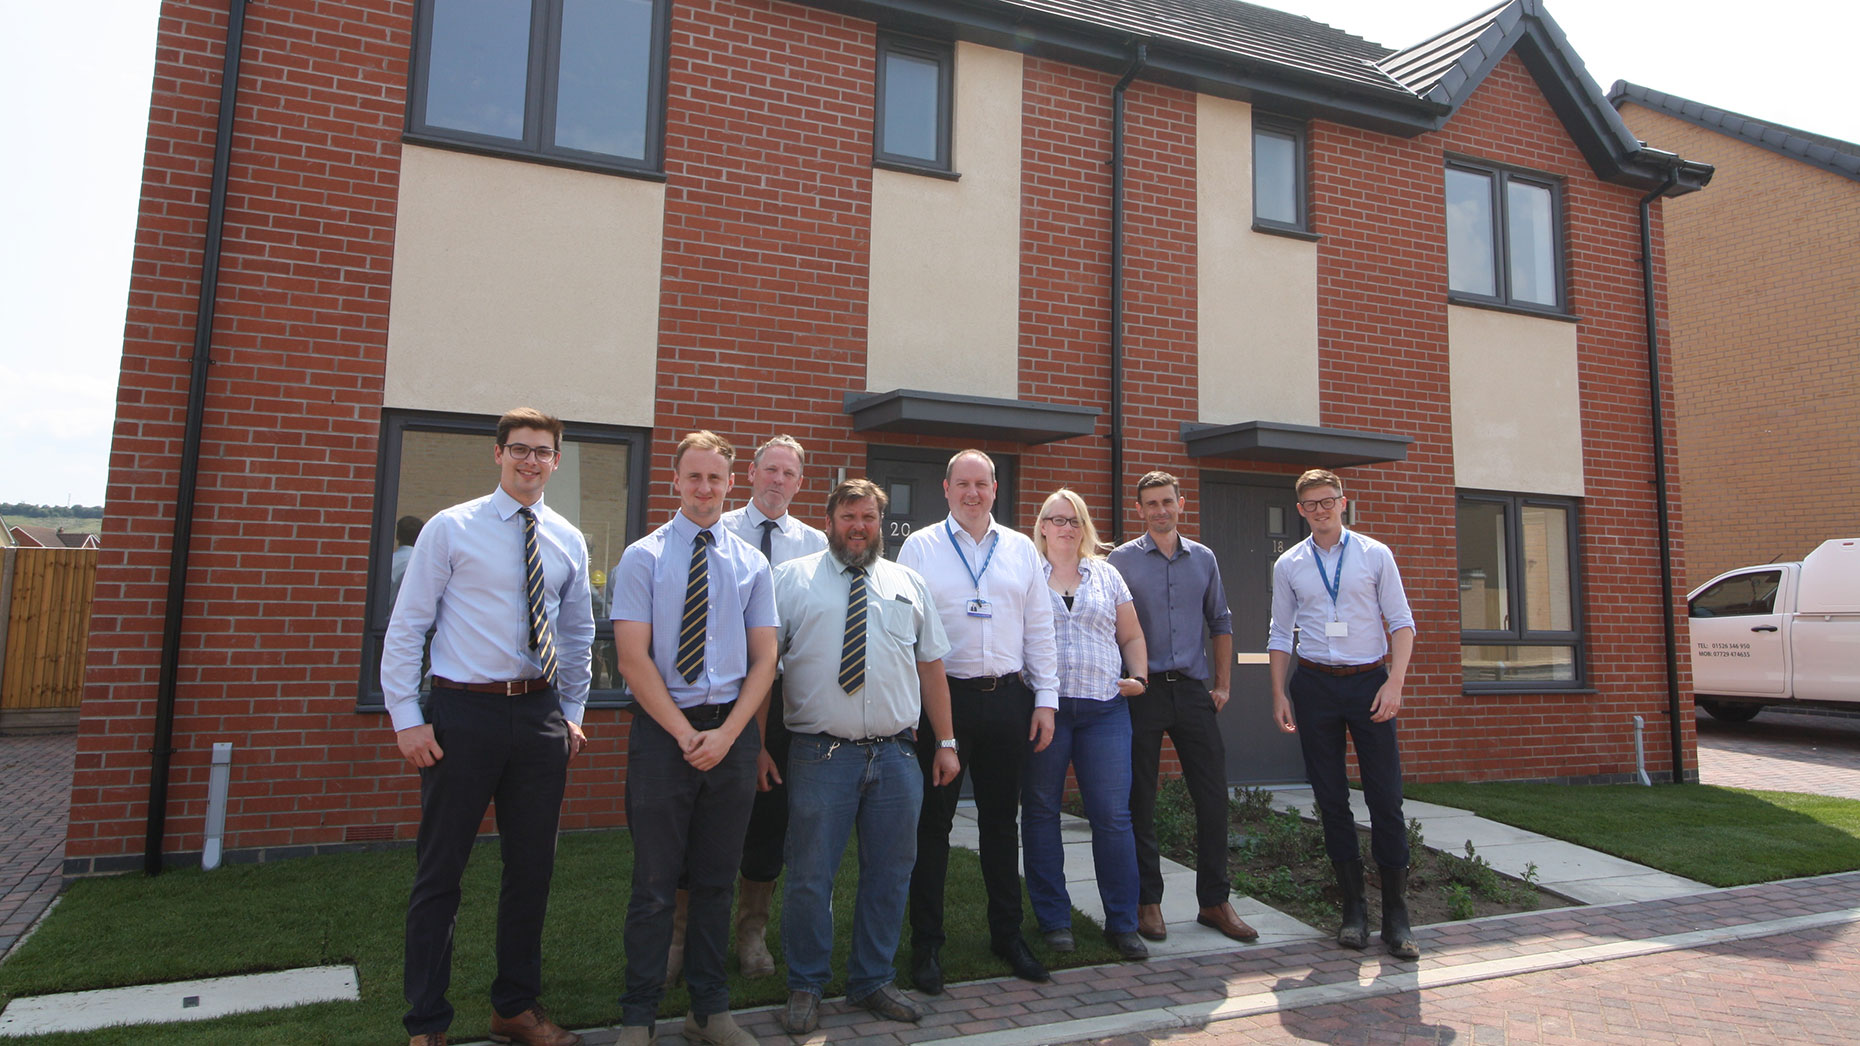 Lindum Completes New Affordable Homes Development Near Lincoln